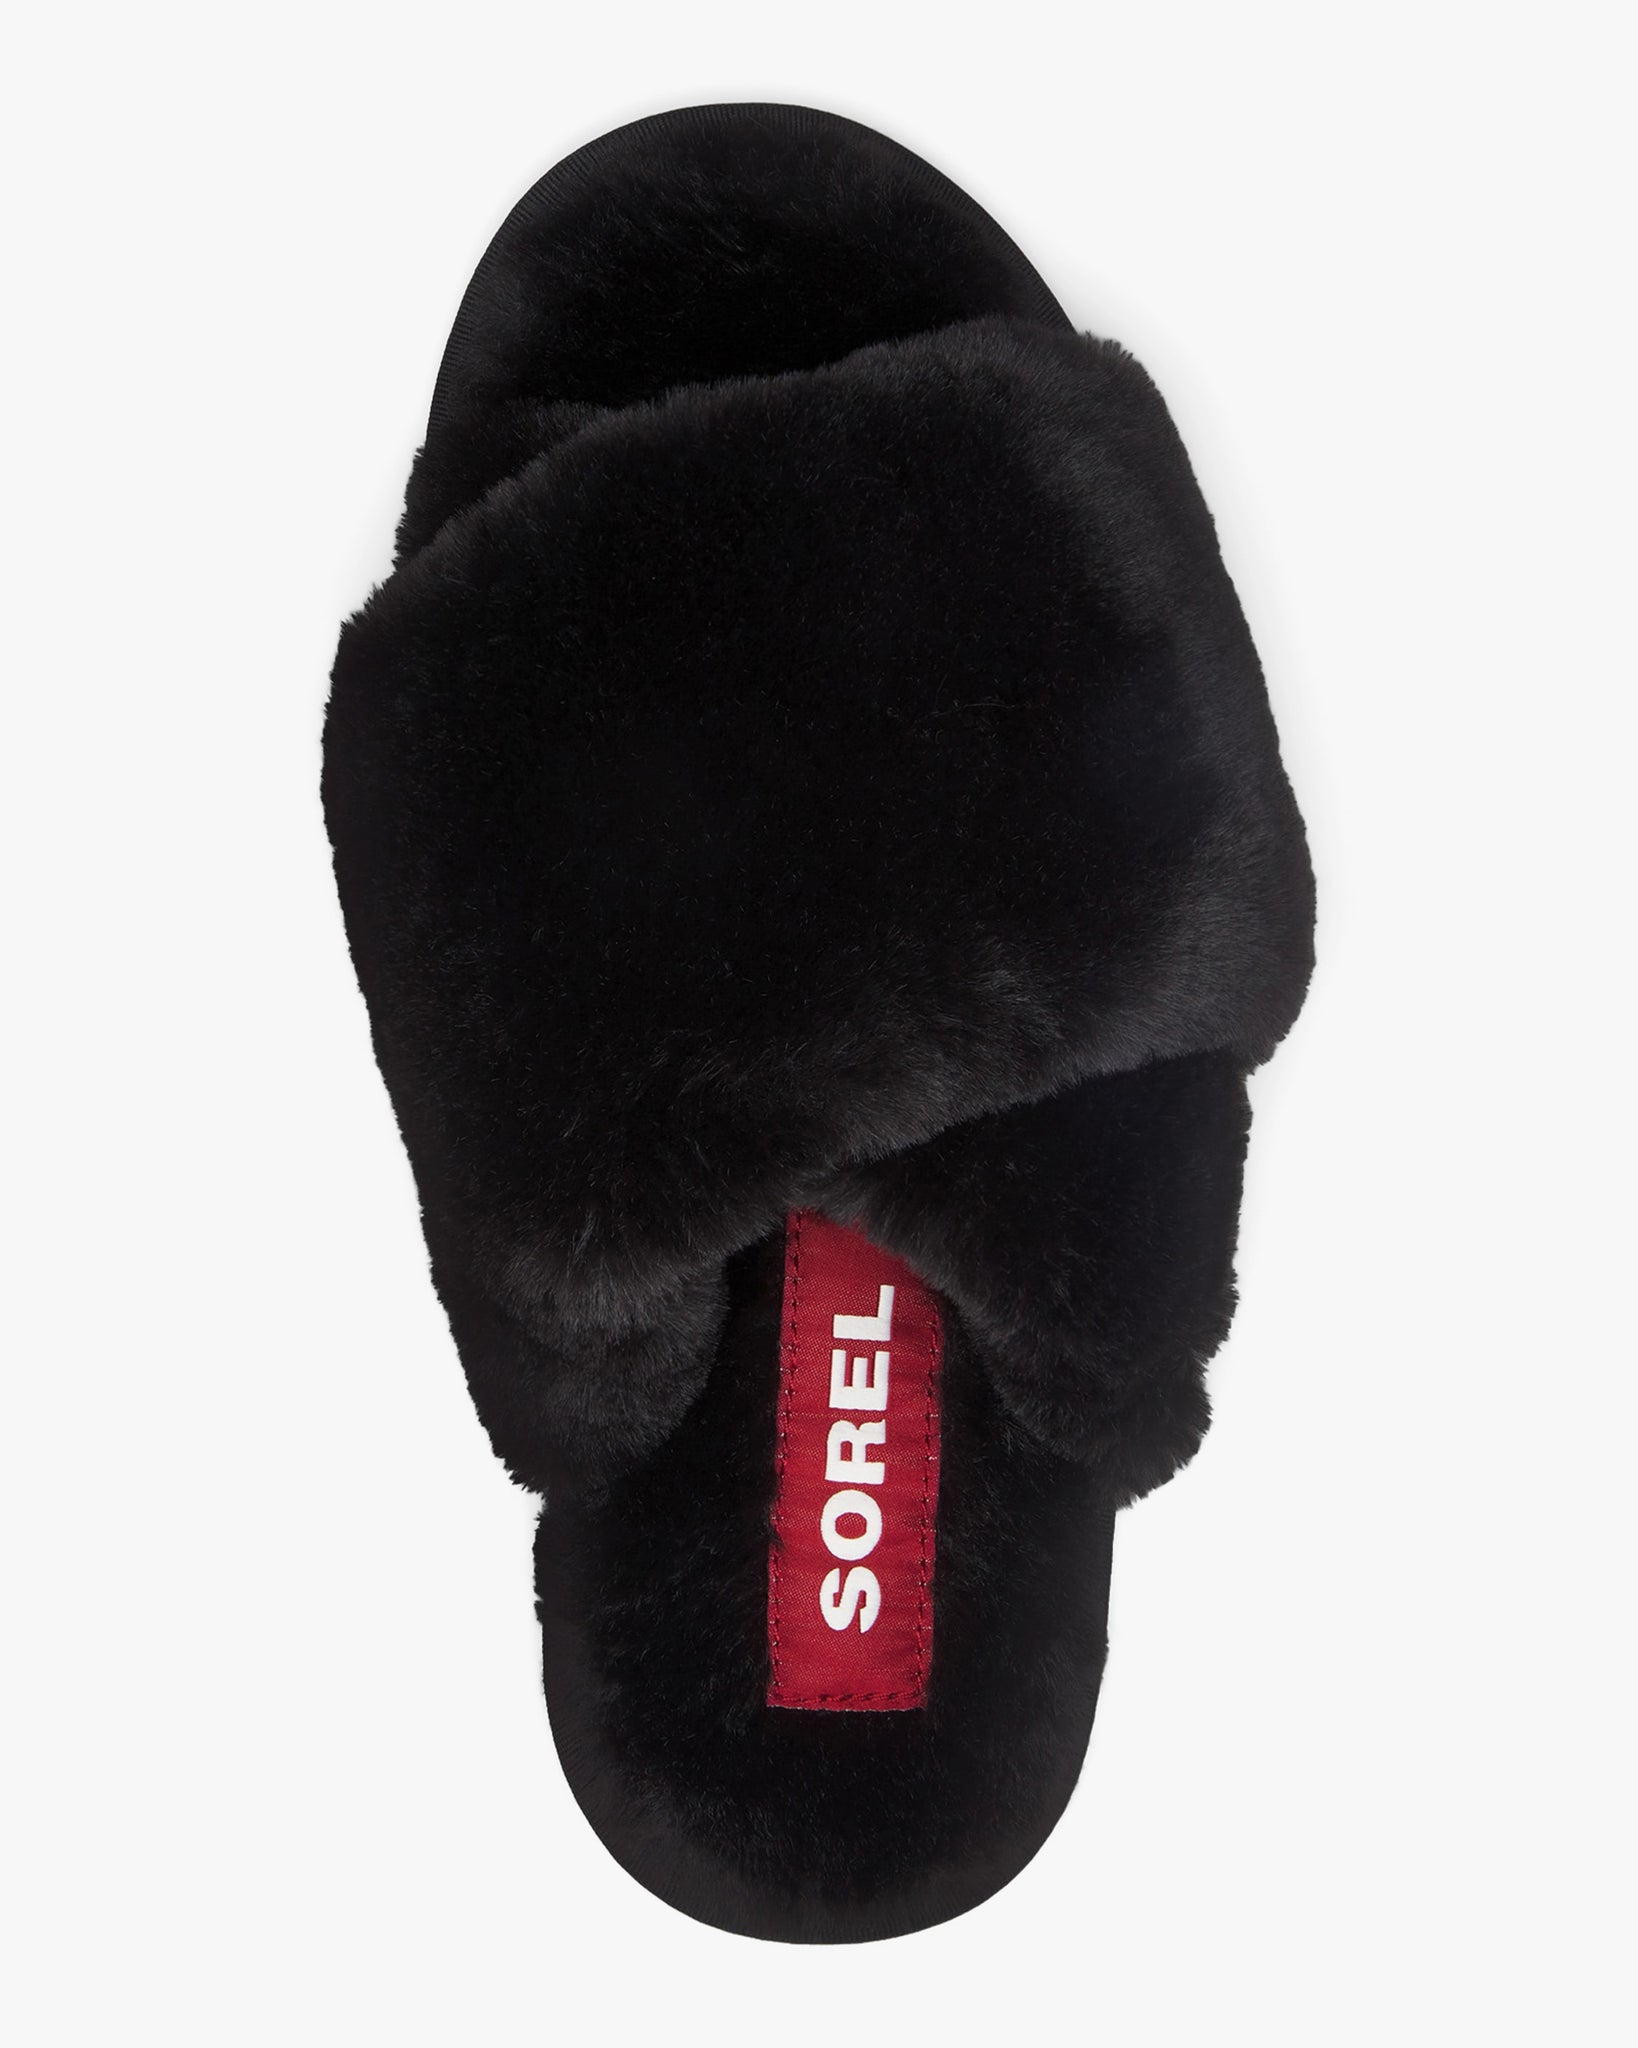 Sorel Go Mail Run Slipper - Women's